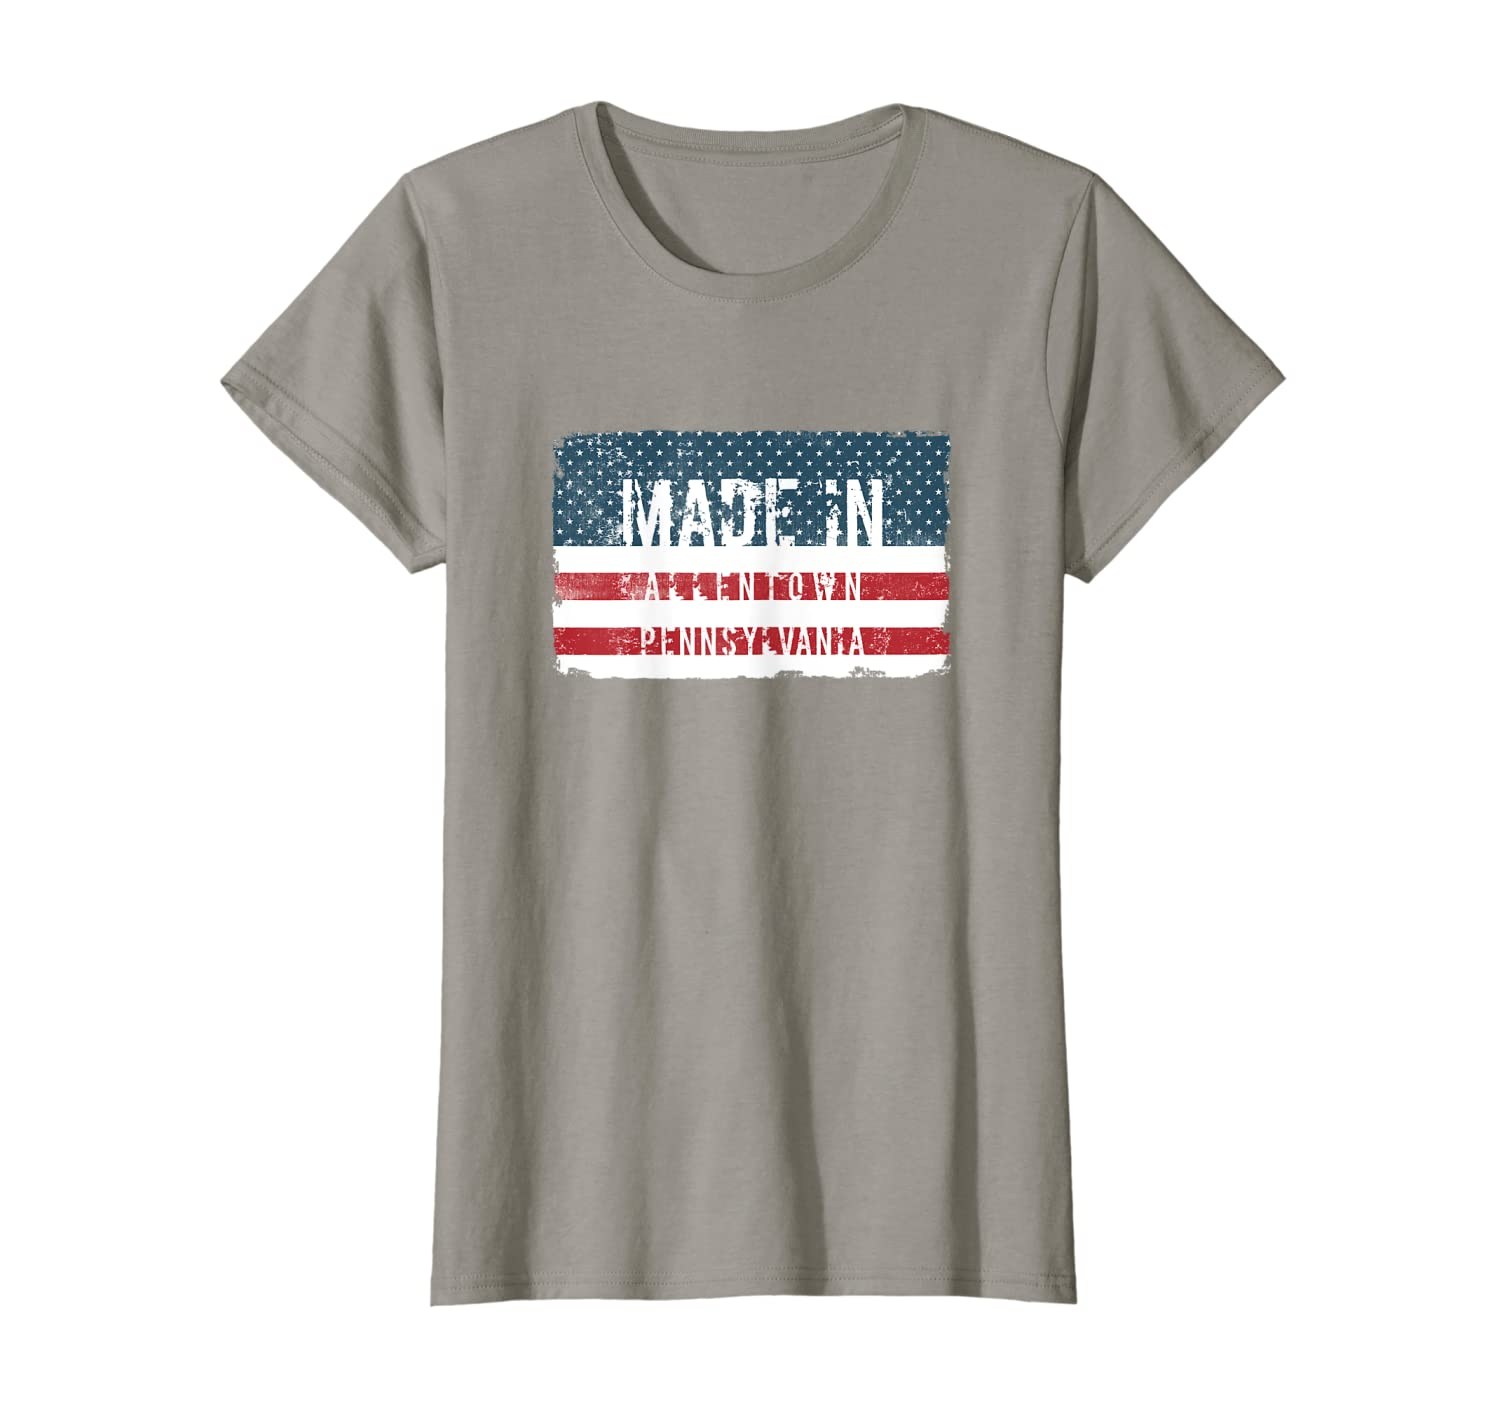 Made in Allentown, Pennsylvania T-shirt-Yolotee